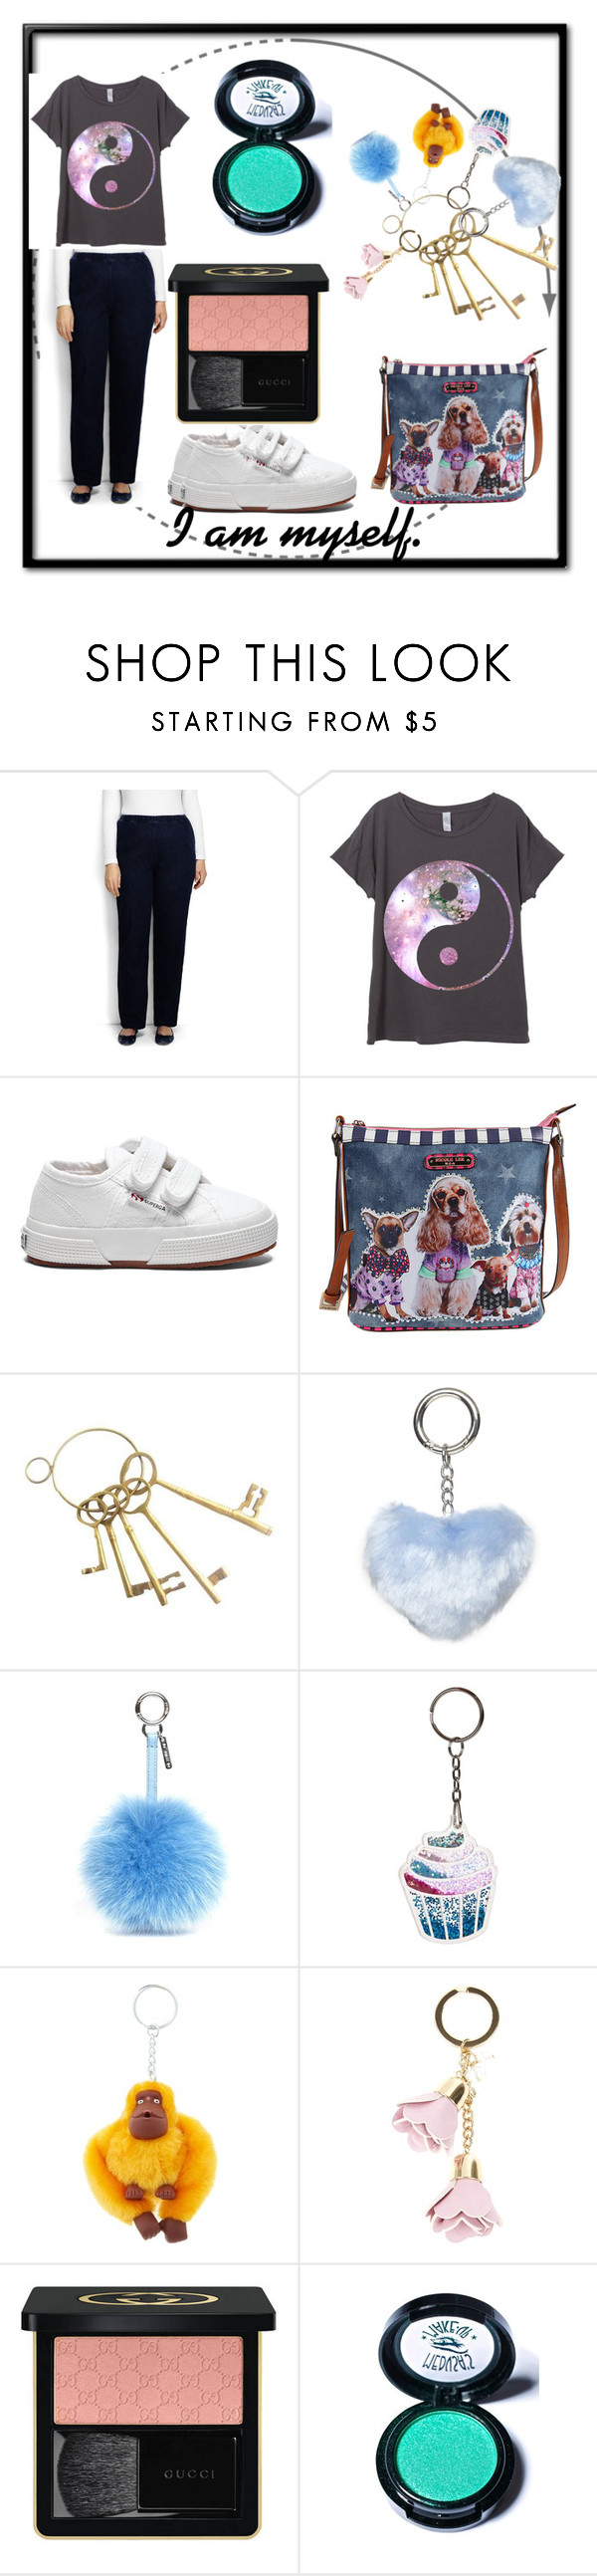 """""""An outfit I'd really wear"""" by buttercreamkisses ❤ liked on Polyvore featuring Lands' End, Superga, Nicole Lee, Dorothy Perkins, Fendi, New Look, Kipling, Gucci and Medusa's Makeup"""